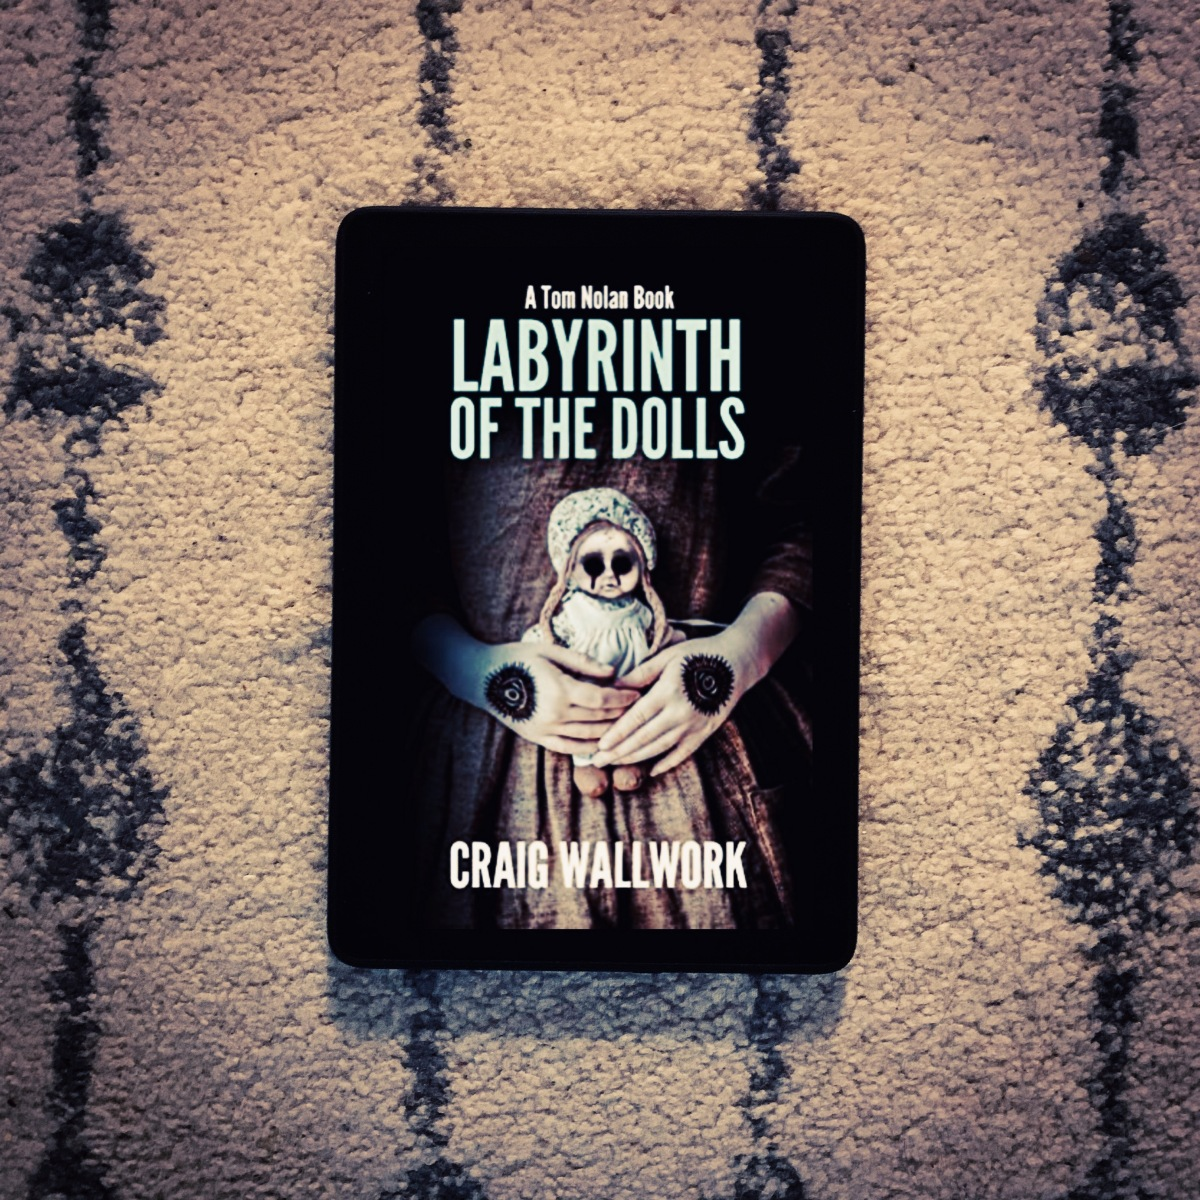 Labyrinth of the Dolls review